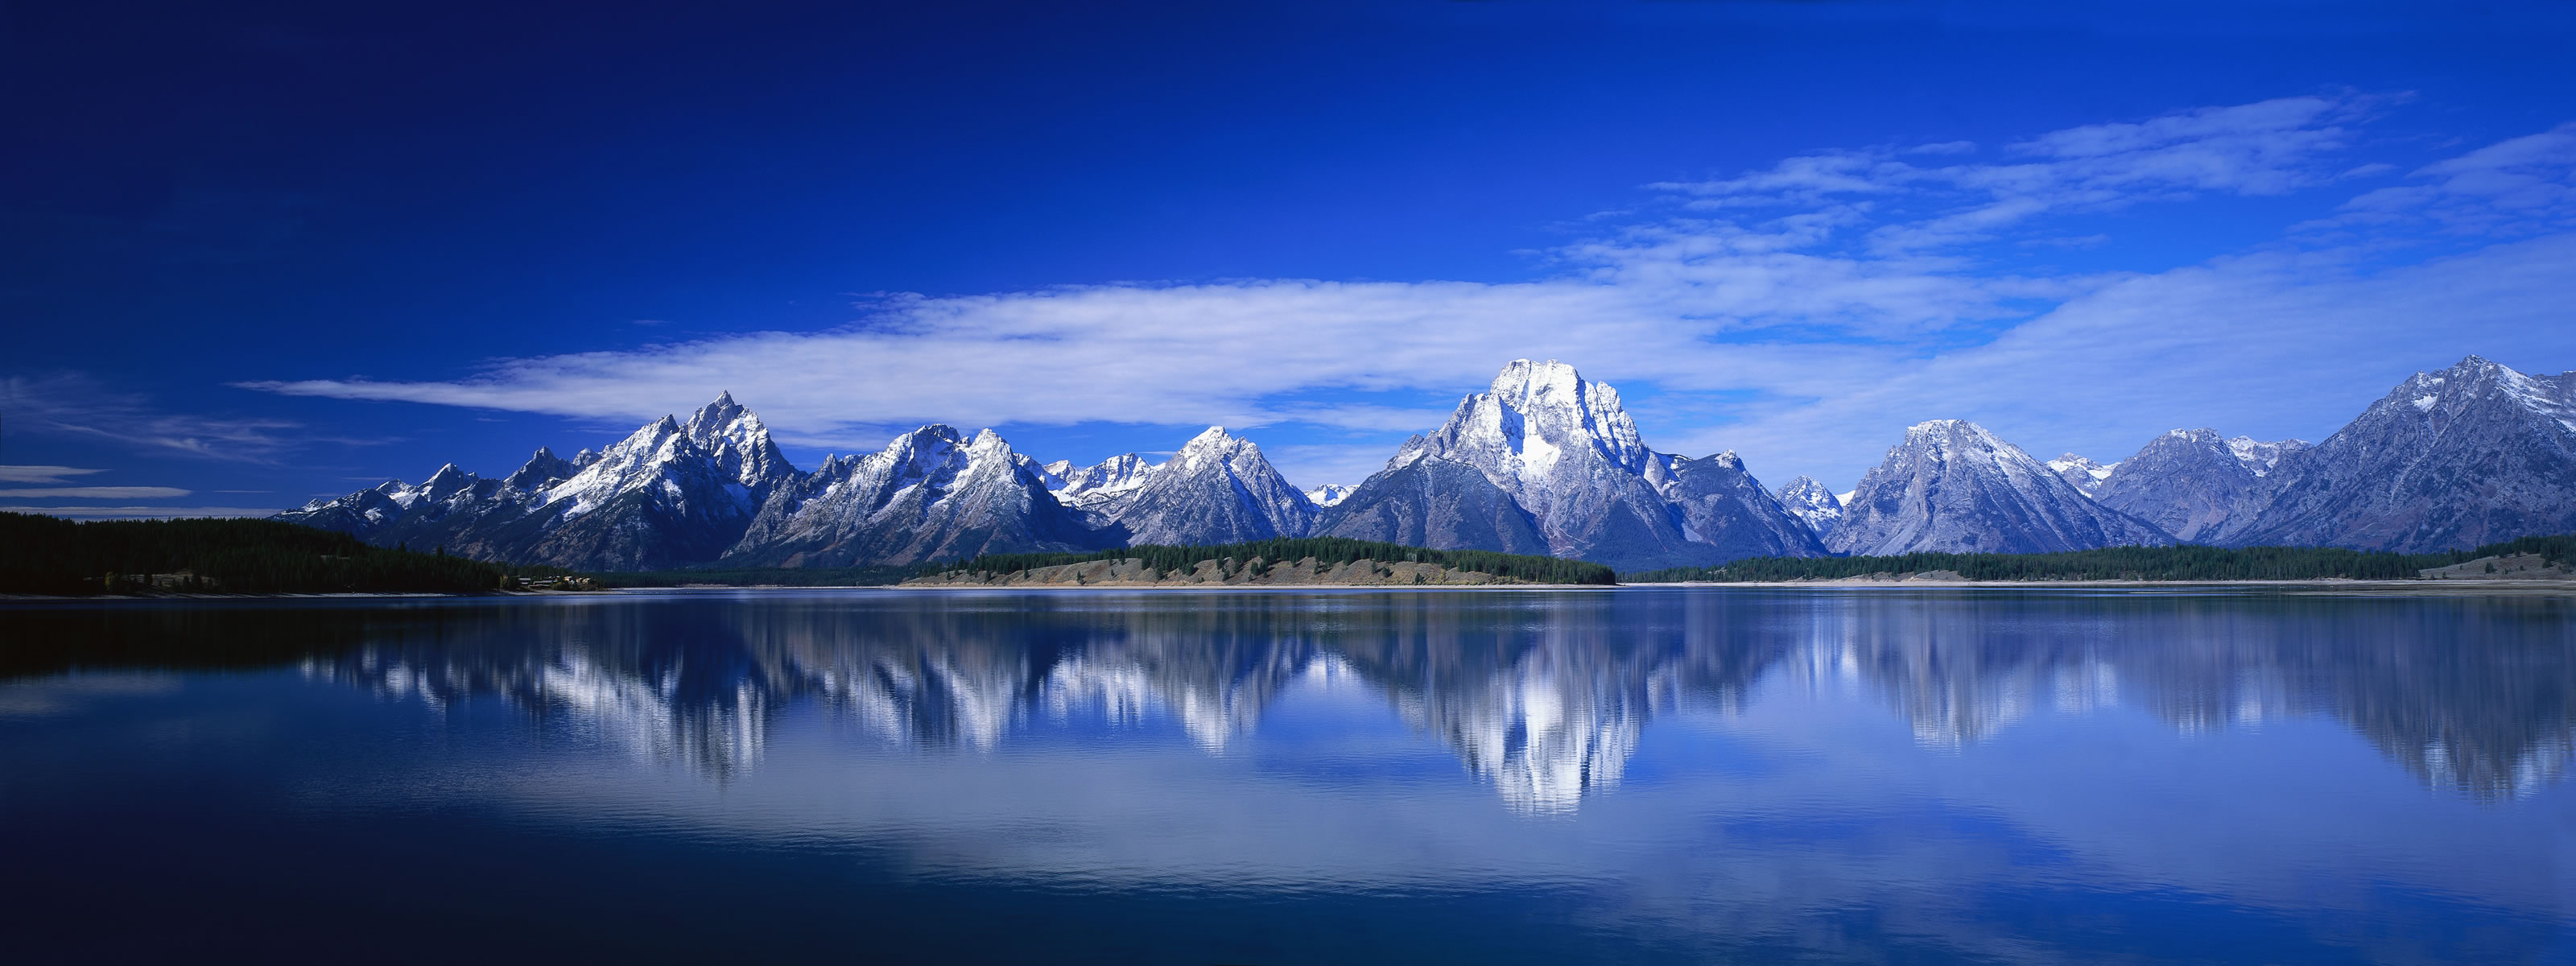 Snowy Mountains Reflections